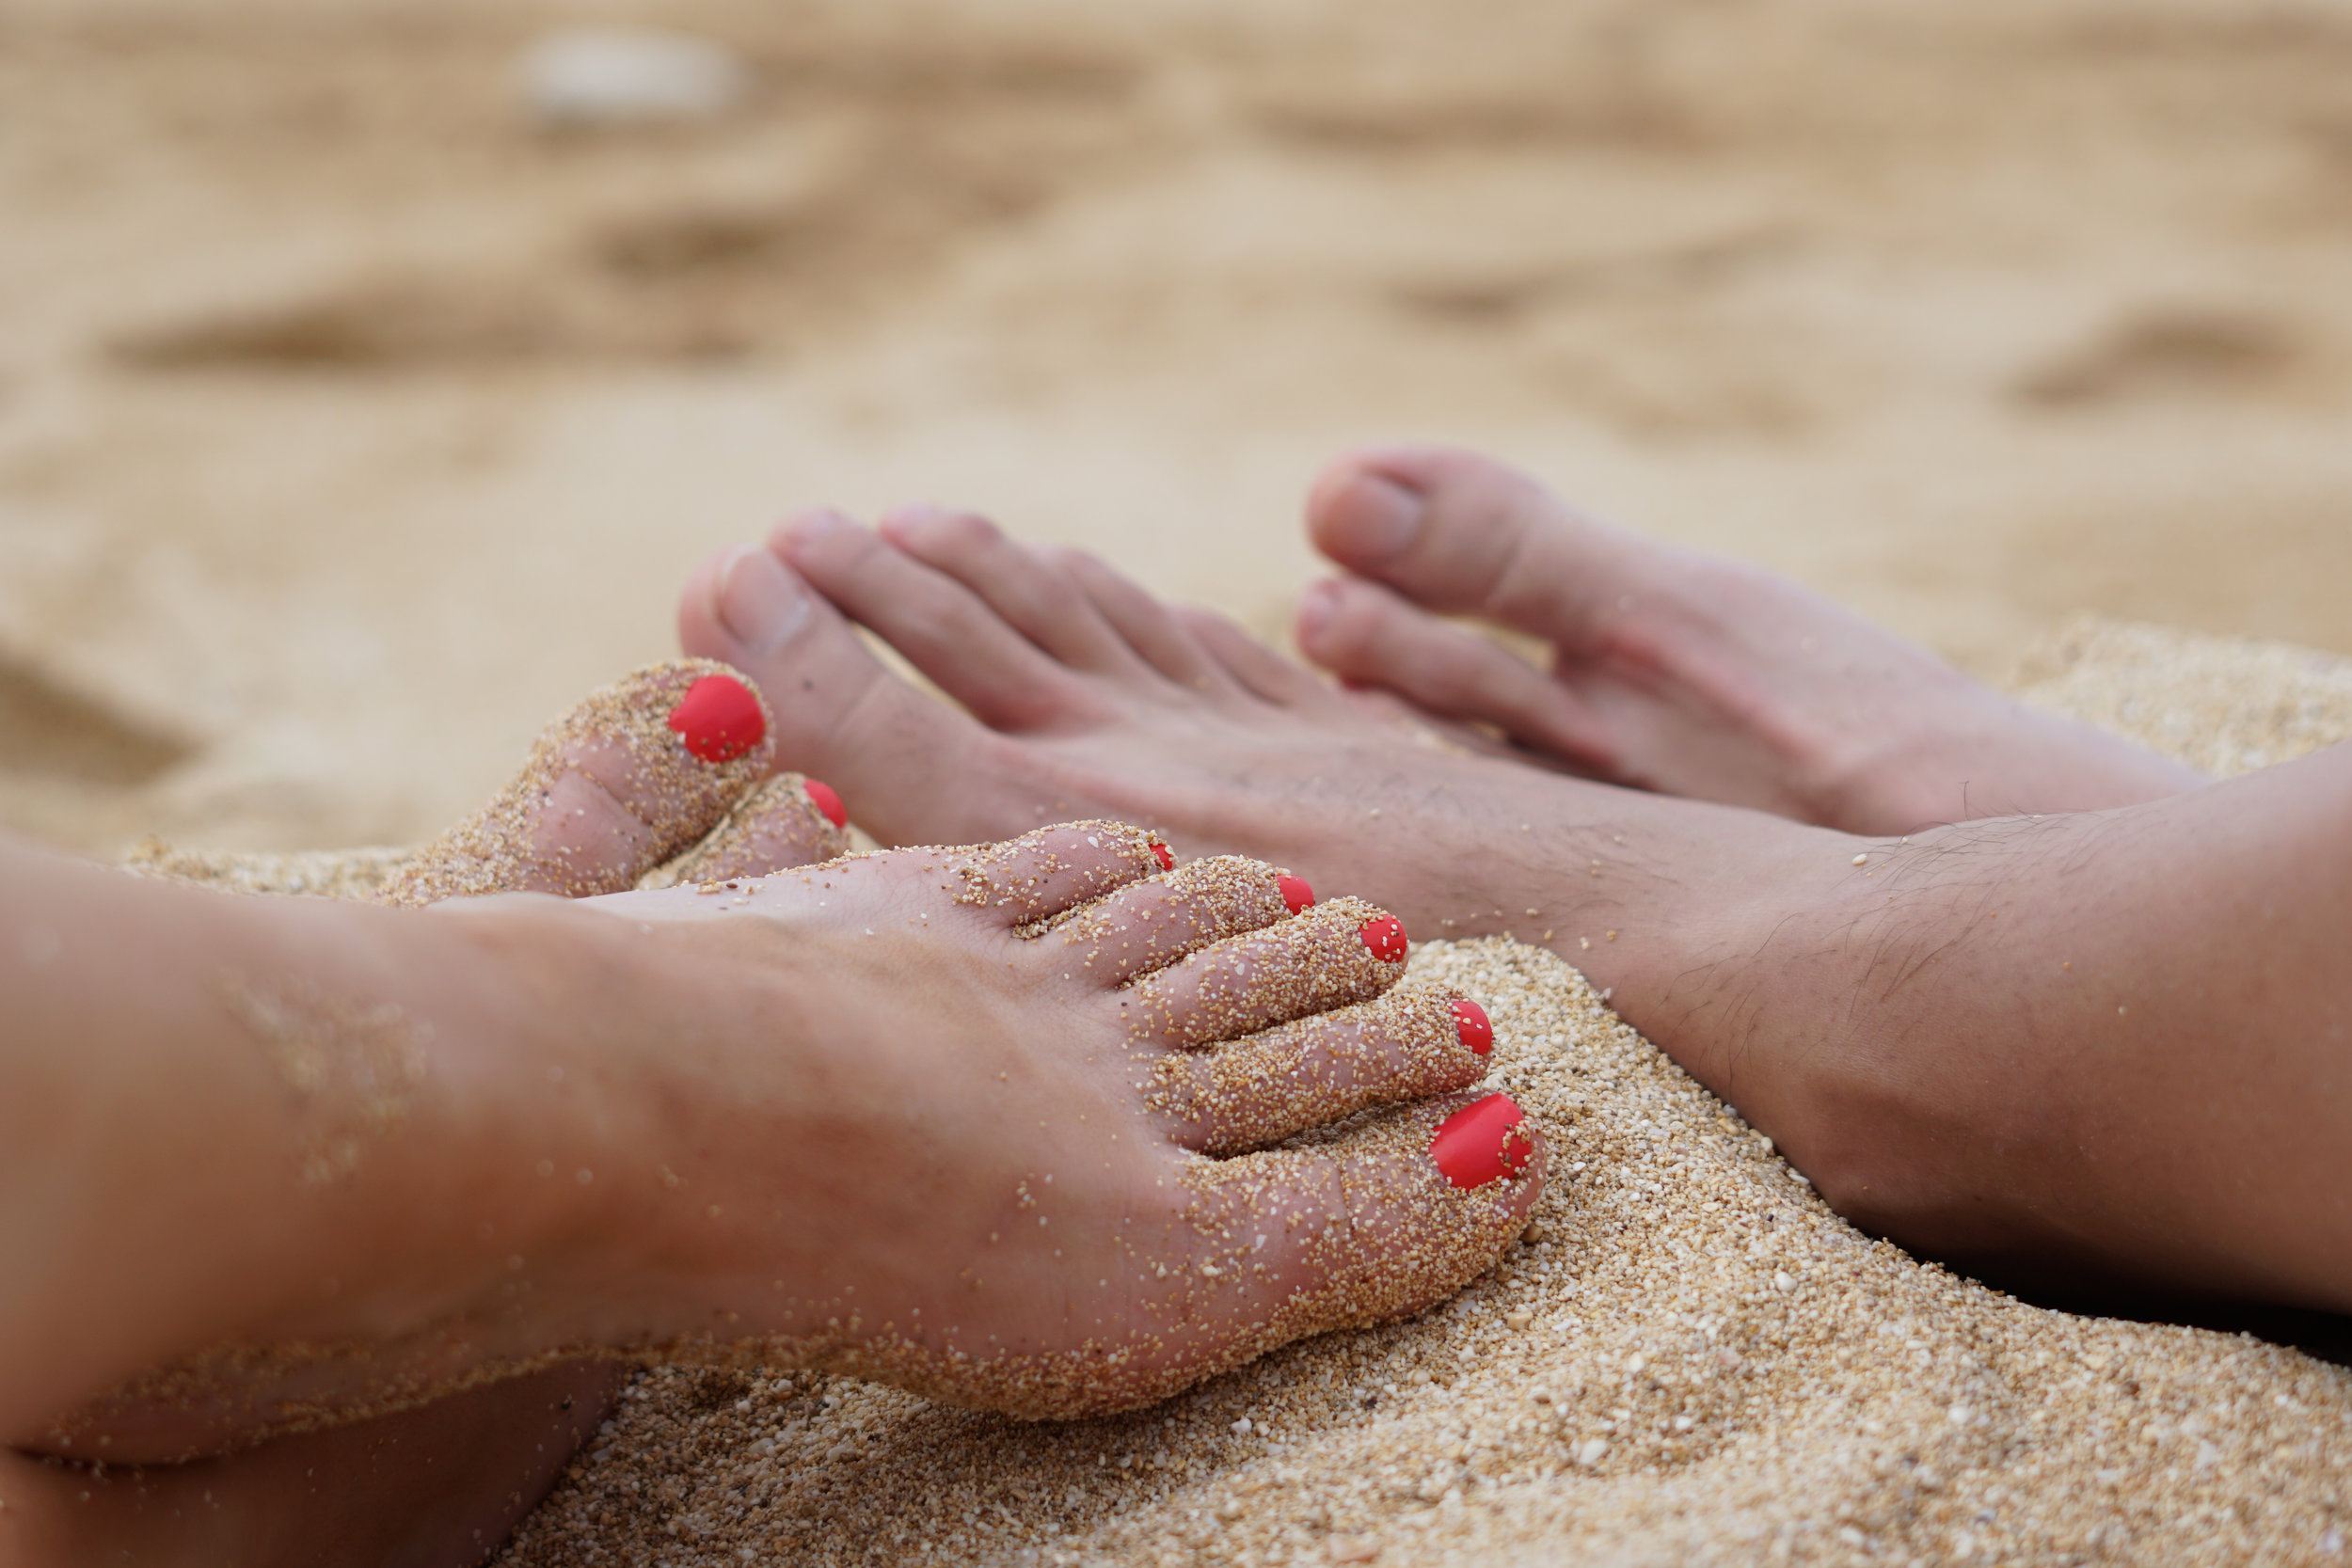 Treats for your hands and feet - Our premium water based polish is non-toxic and odourless. Because of its gentle state, we do not recommend it for long-lasting manicures.All of our creams and exfoliants are made from certified organic ingredients.